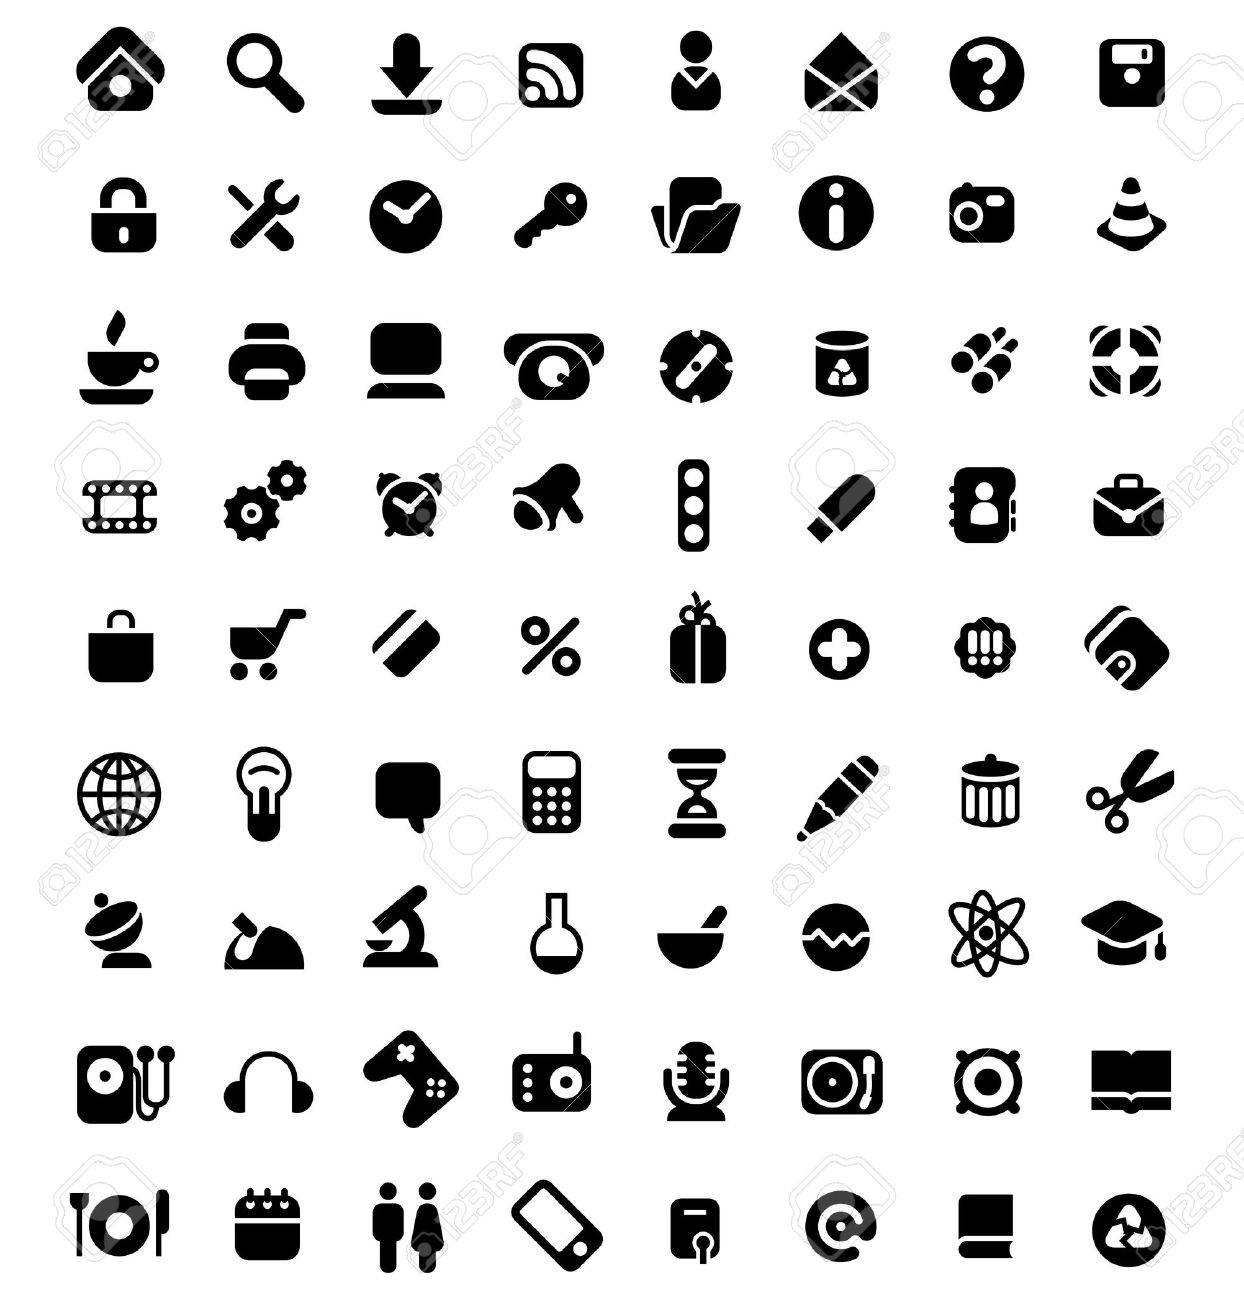 Set Of 72 Icons For Website, Computer, Business, Shopping, Science